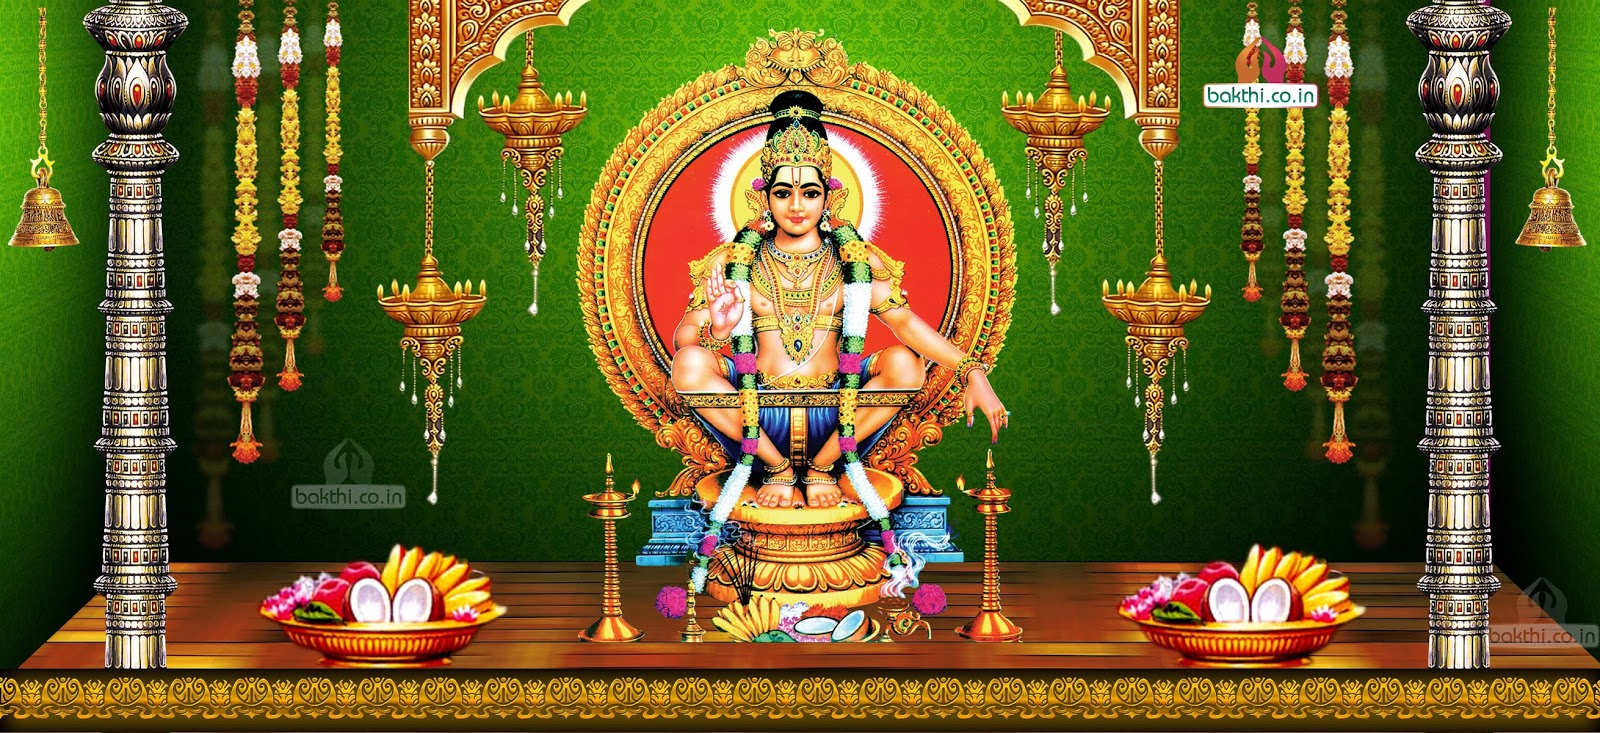 Lord ayyappa swamy hd images free downloads for calendars bakthi famous god ayyappa swamy hd images wallpapers photos thecheapjerseys Images